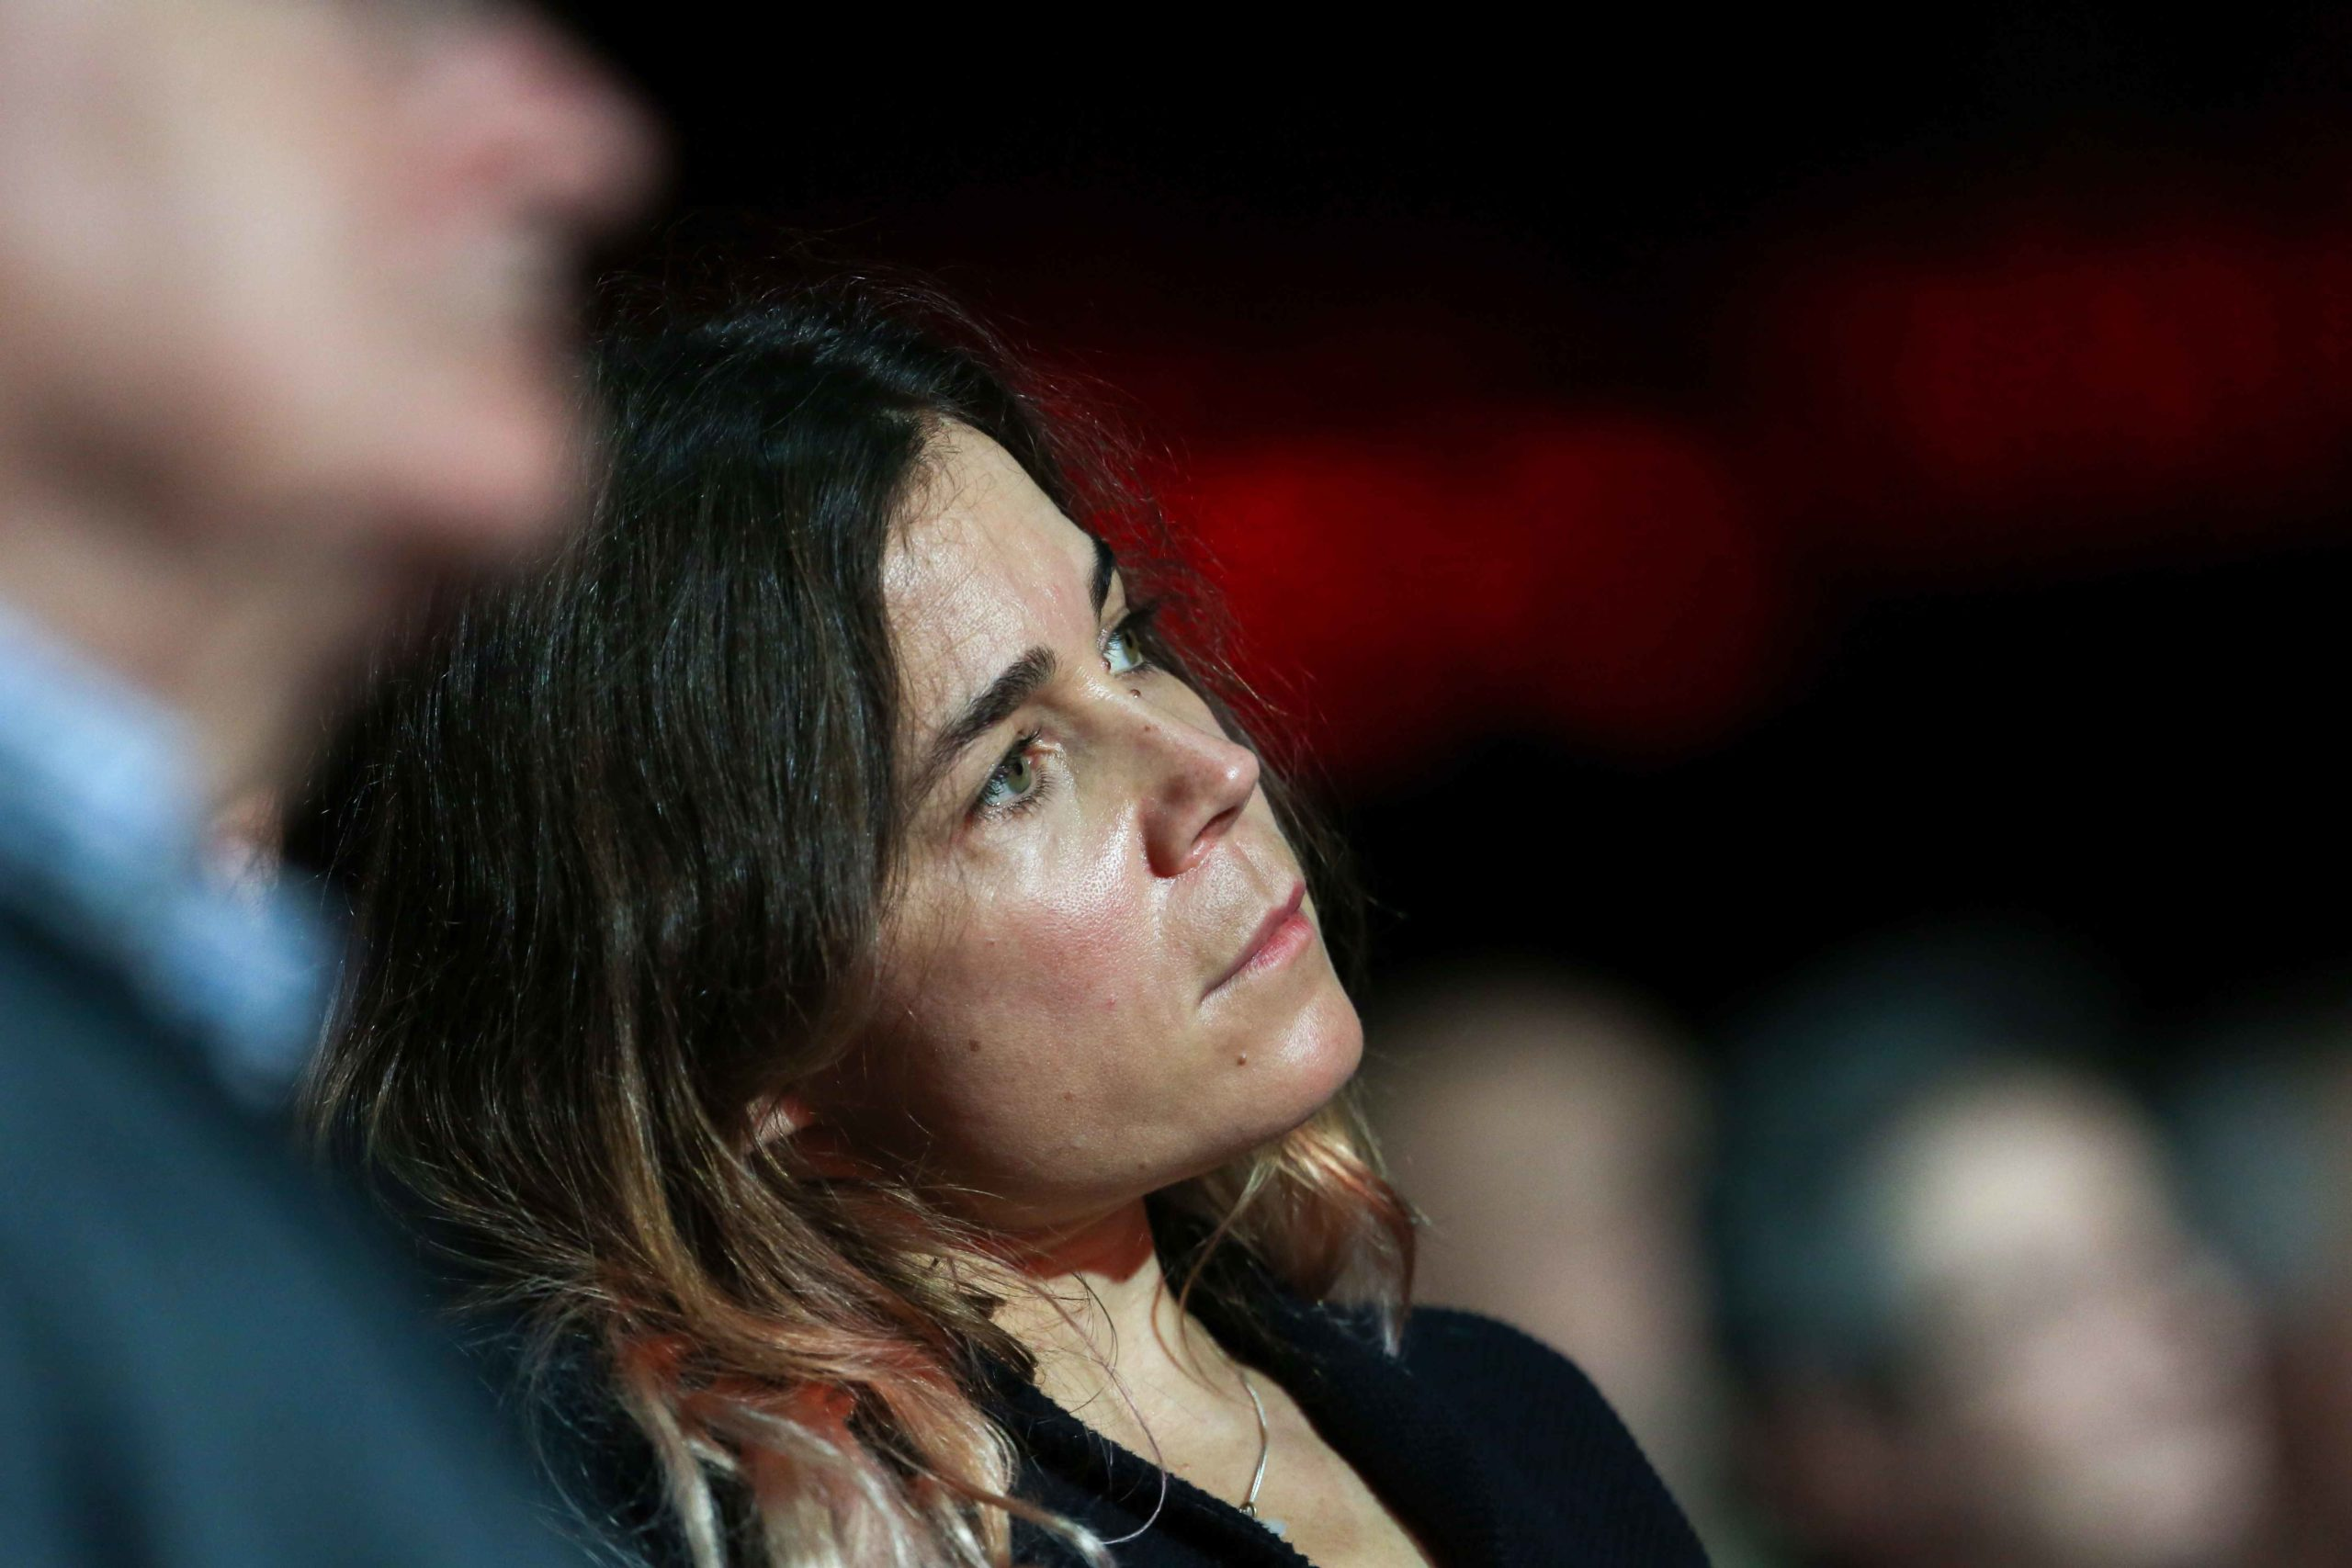 French comedian Blanche Gardin takes part in a report of the Abbe Pierre Foundation on poor quality housing conditions, on January 31, 2020 in La Defense, near Paris.